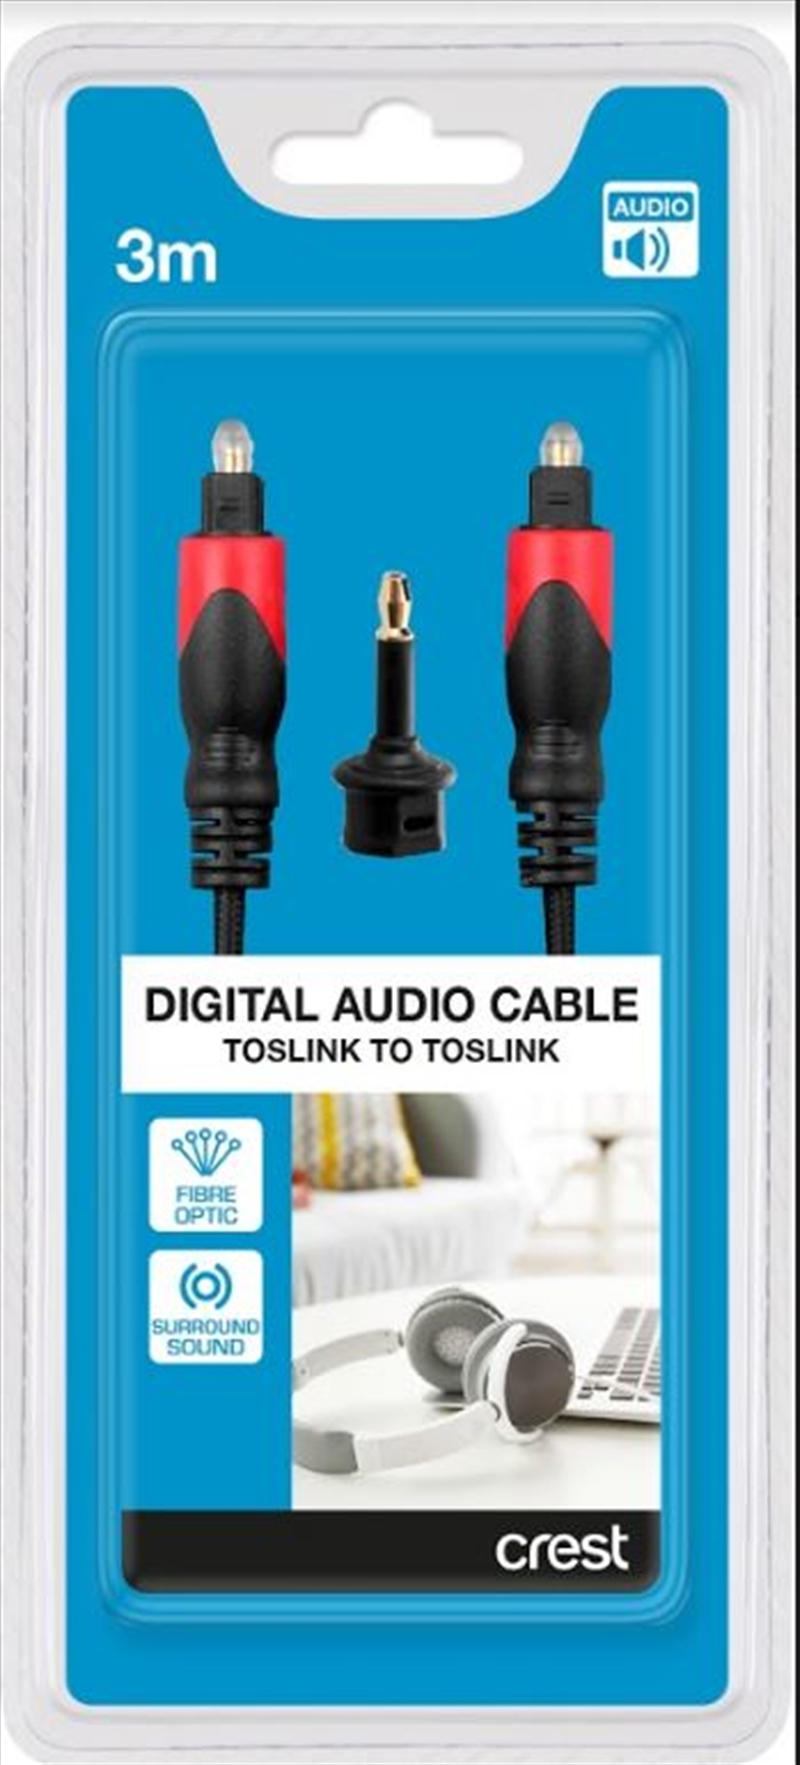 Digital Optical Audio Cable Toslink - 3M | Accessories